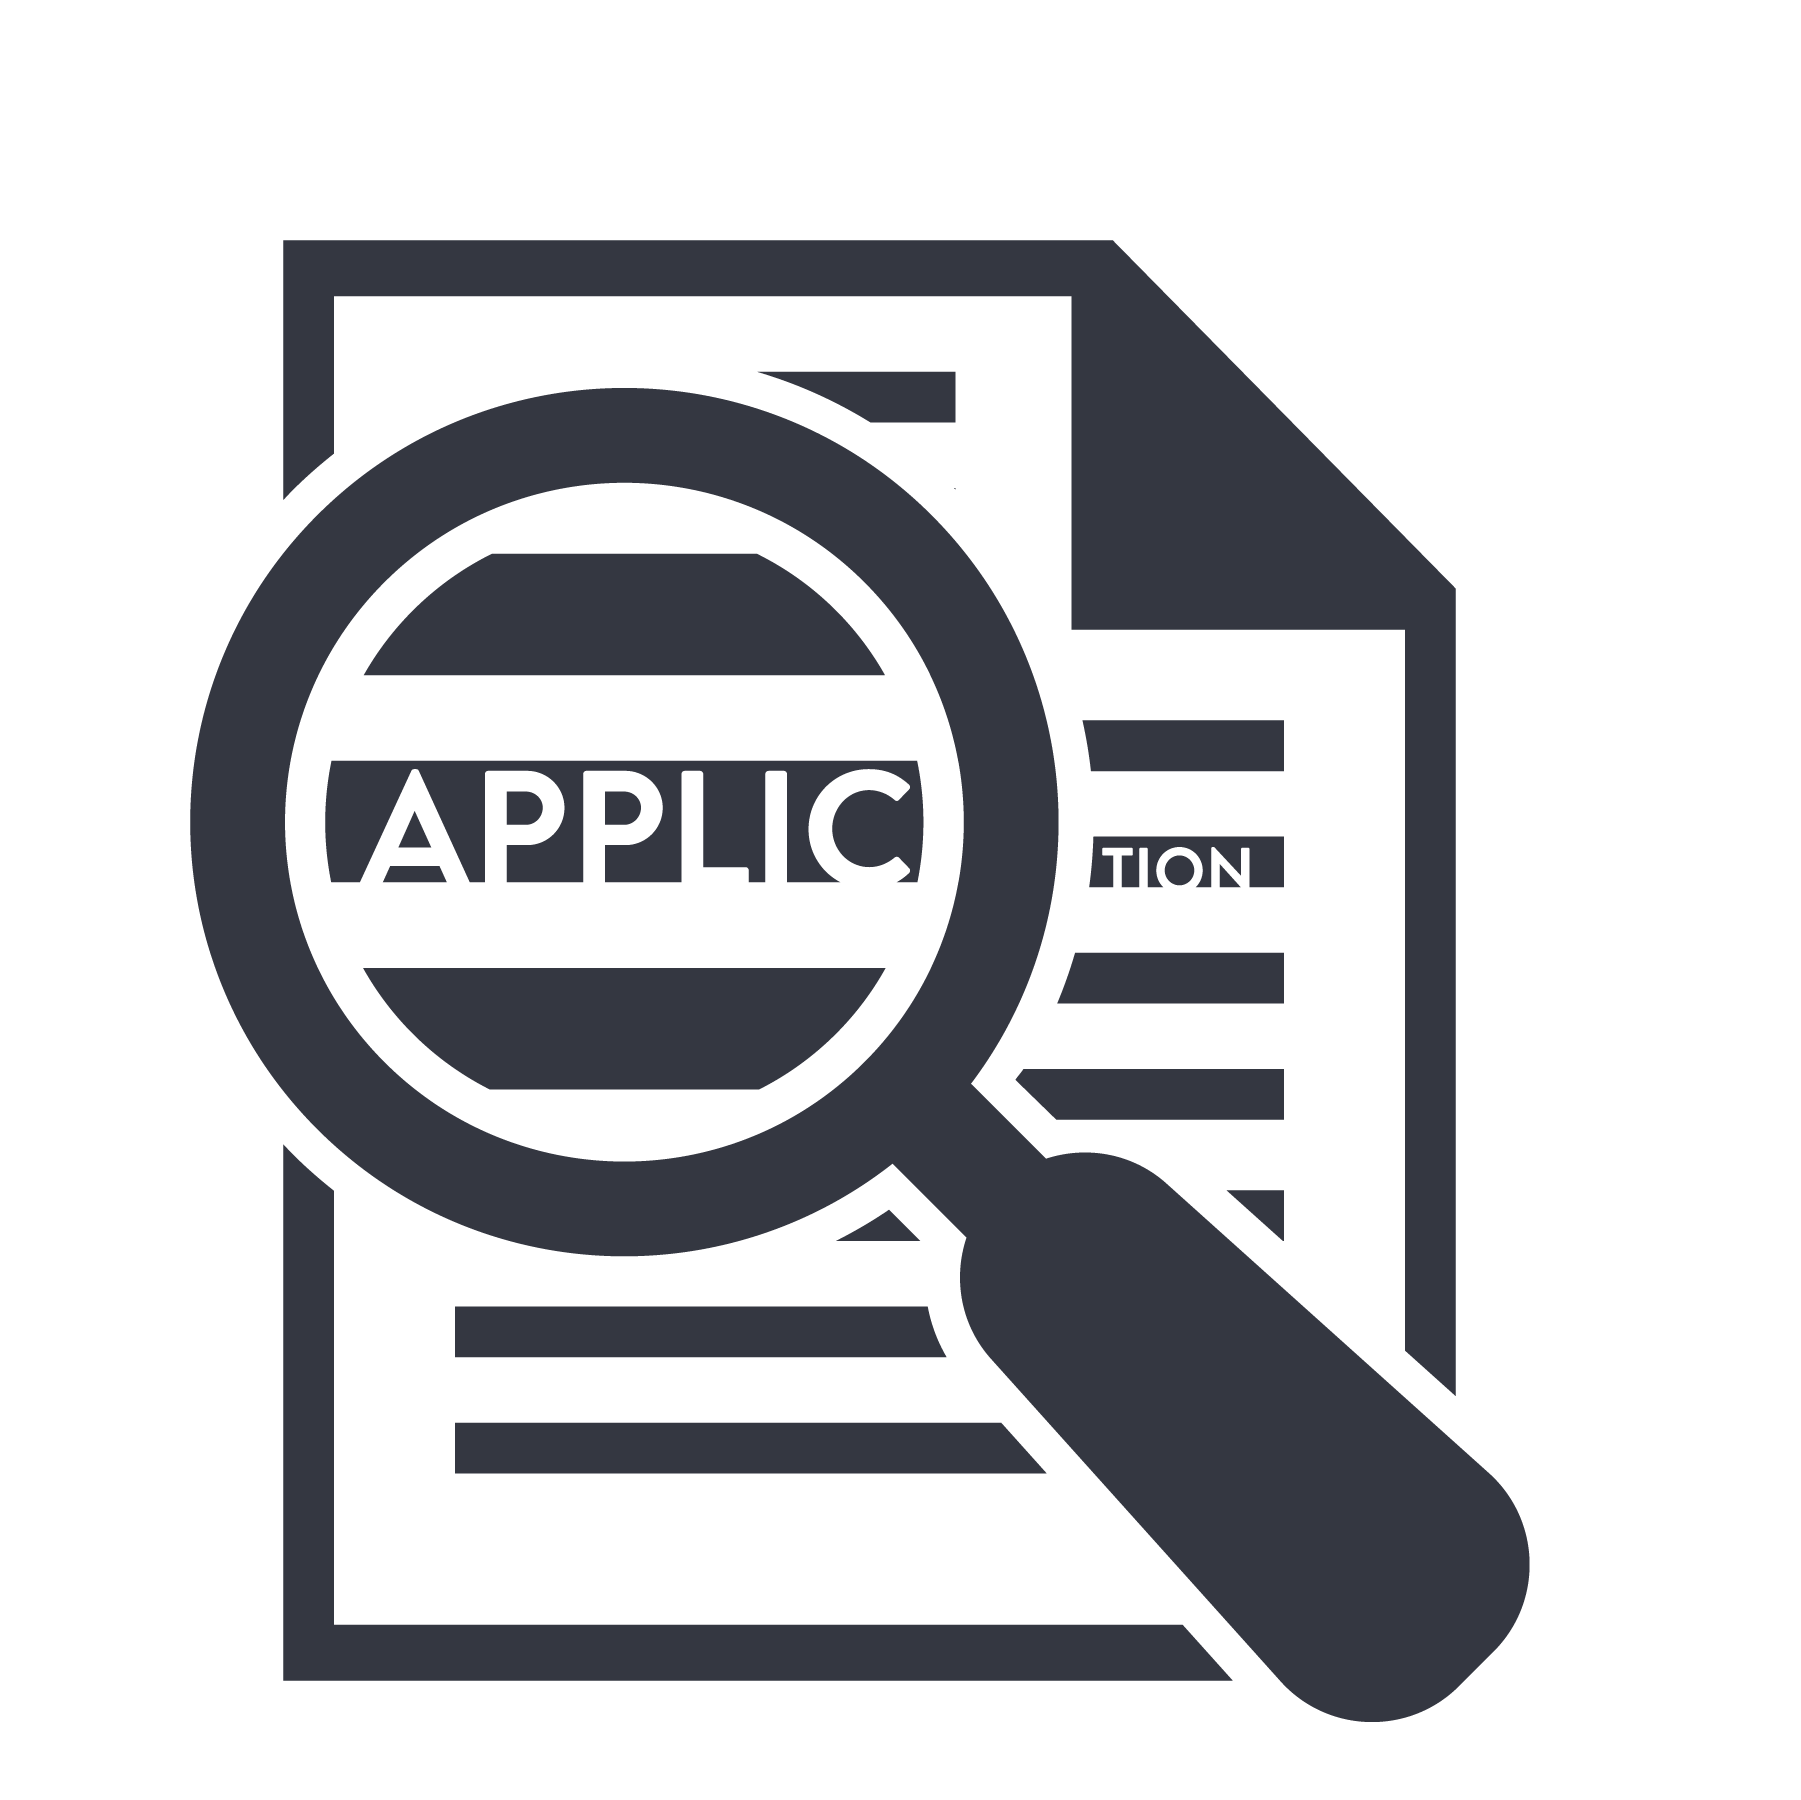 Hiring process icon